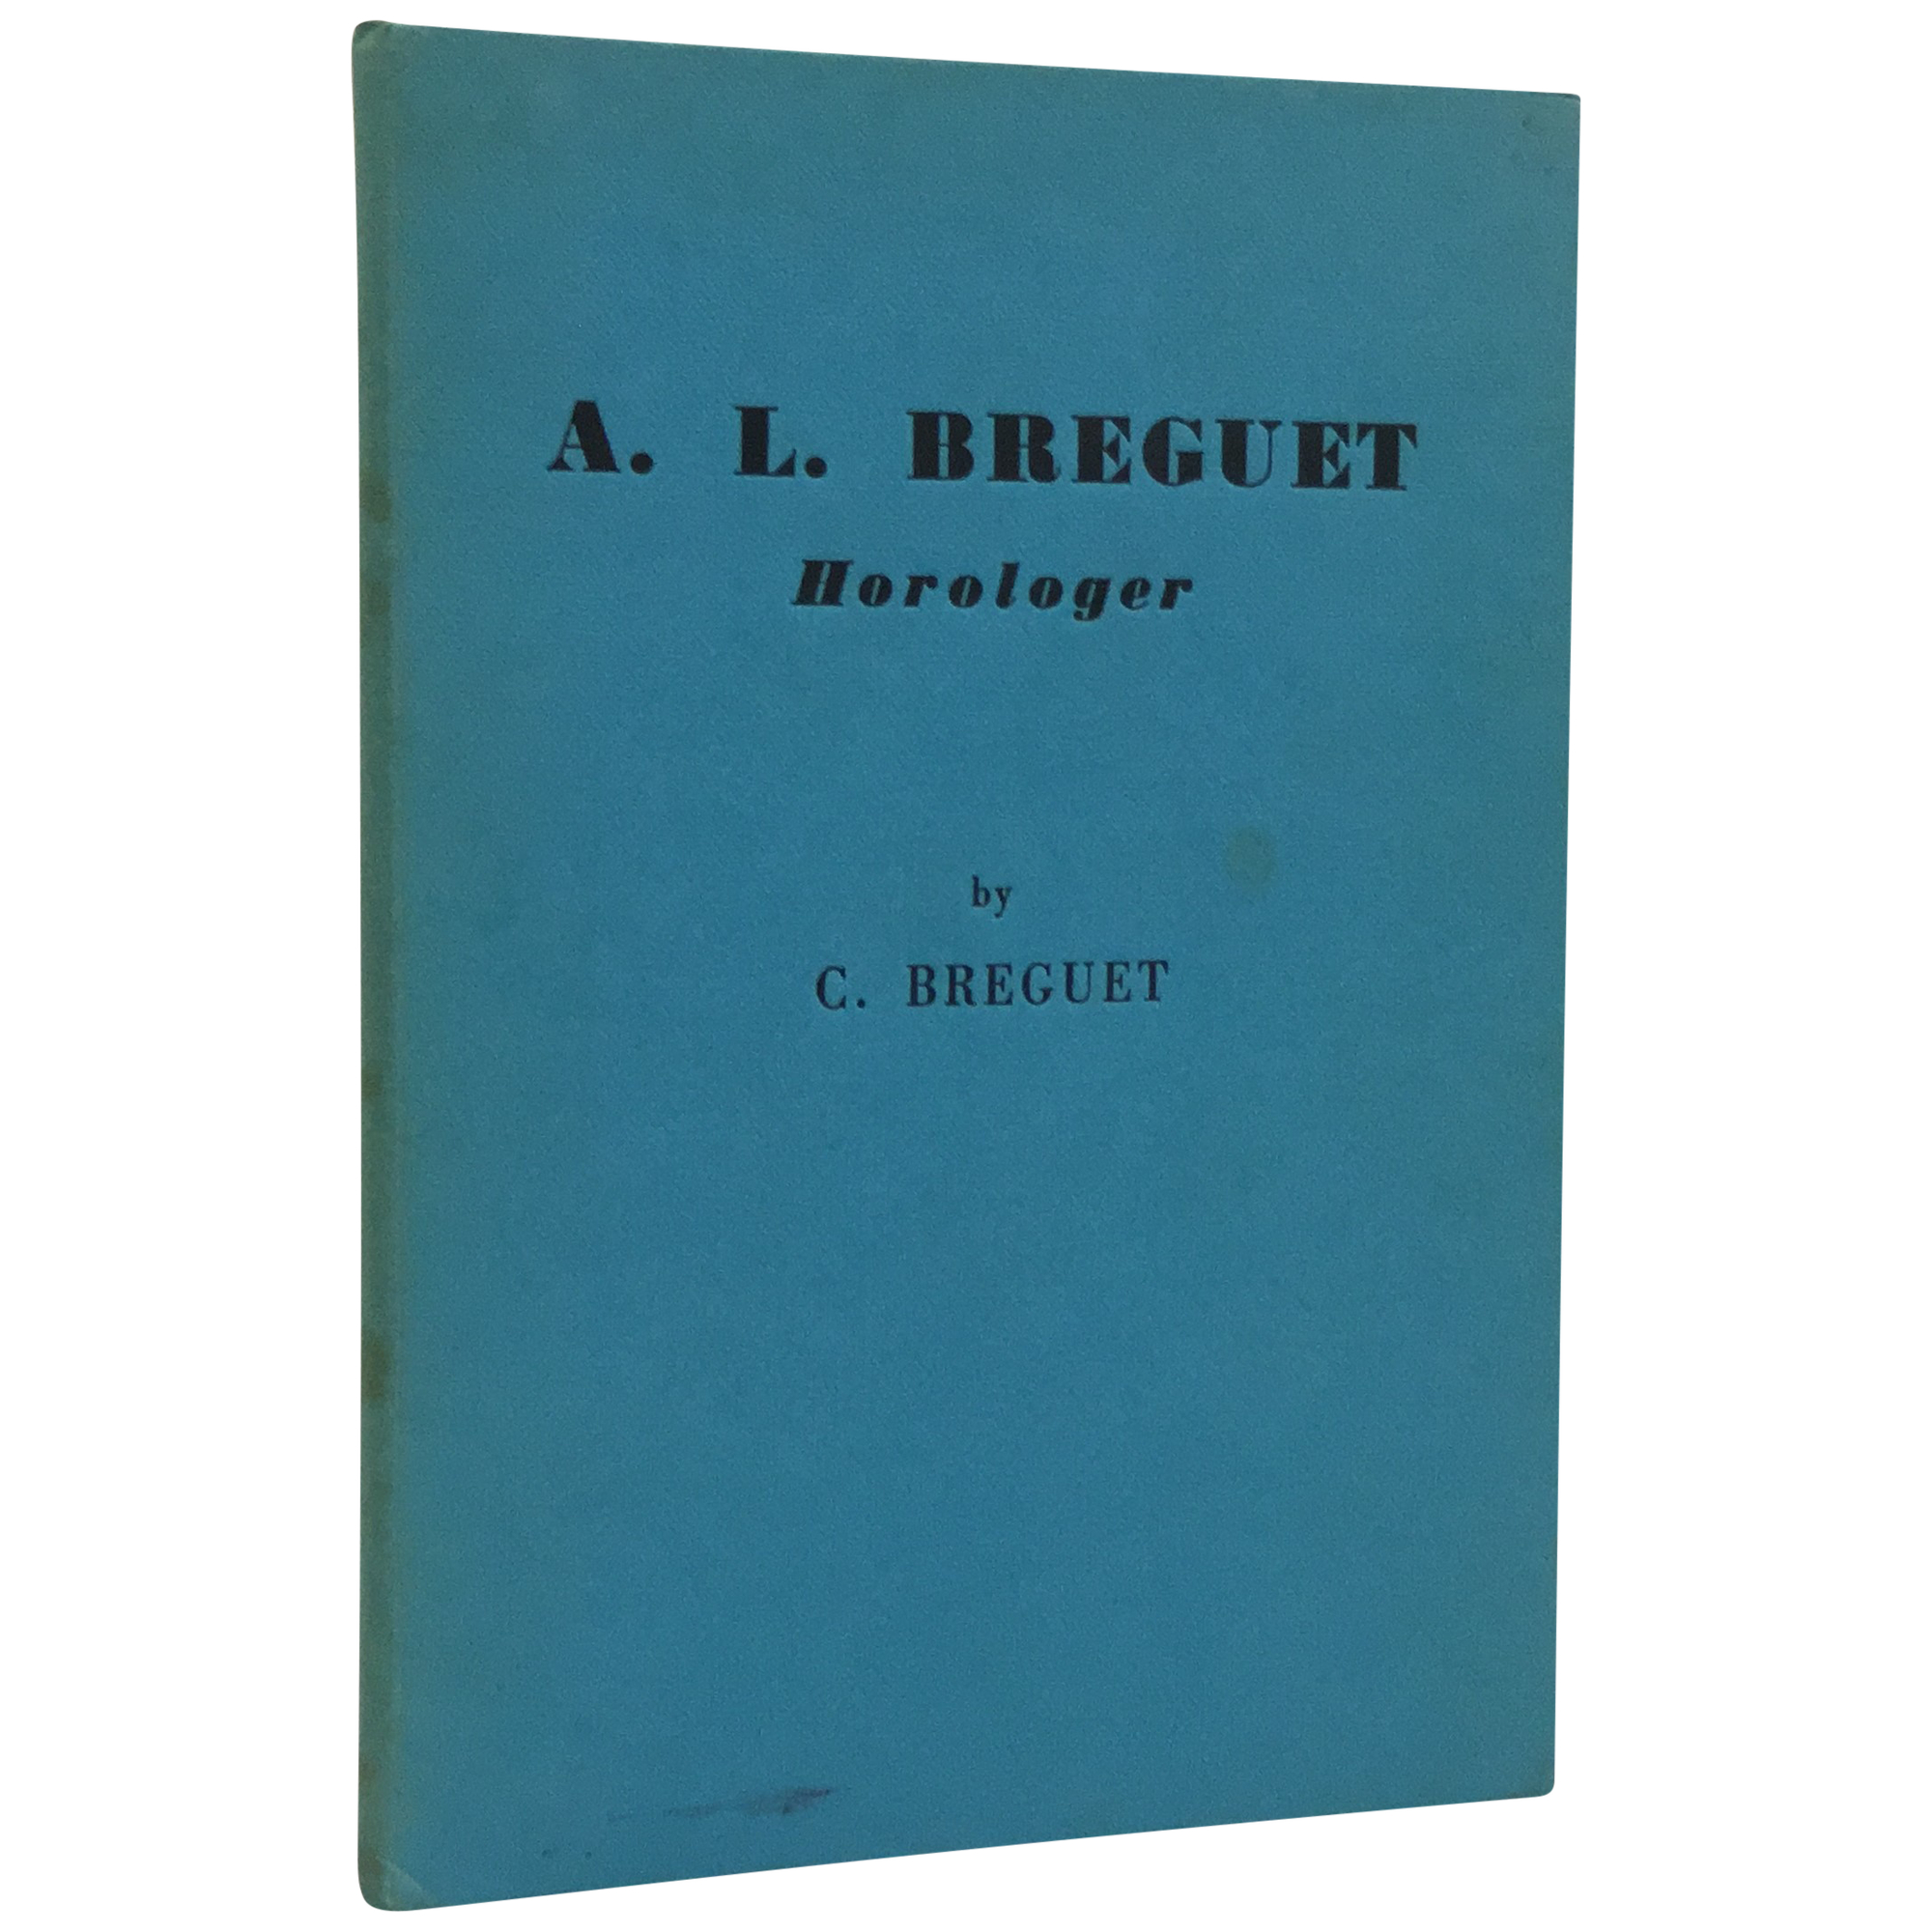 A. L. Breguet, Horologer Breguet, C. [Near Fine] [Hardcover] 34 pages, including 22 pages of black-and-white plates. A short biography of the founder of the Breguet watch firm; translated from the French by W. A. H. Brown. Near fine hardcover.